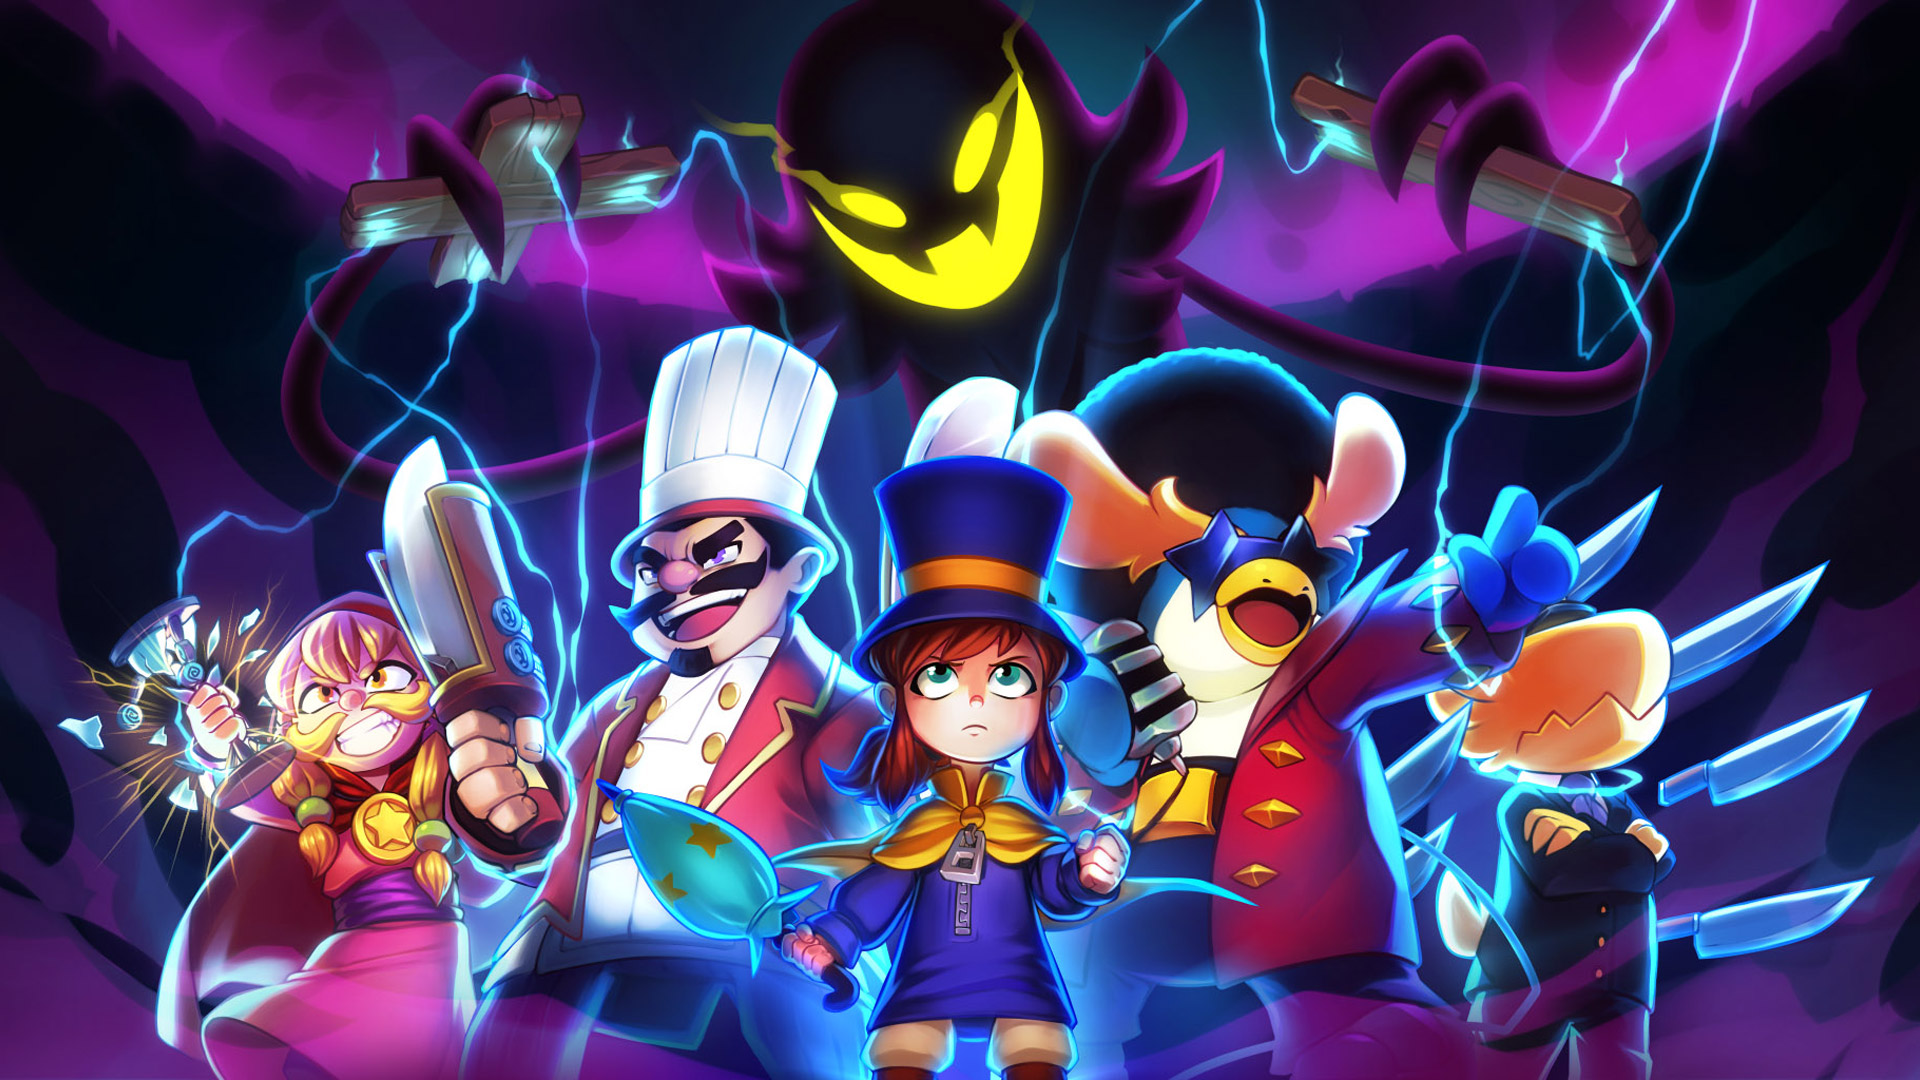 Free A Hat in Time Wallpaper in 1920x1080